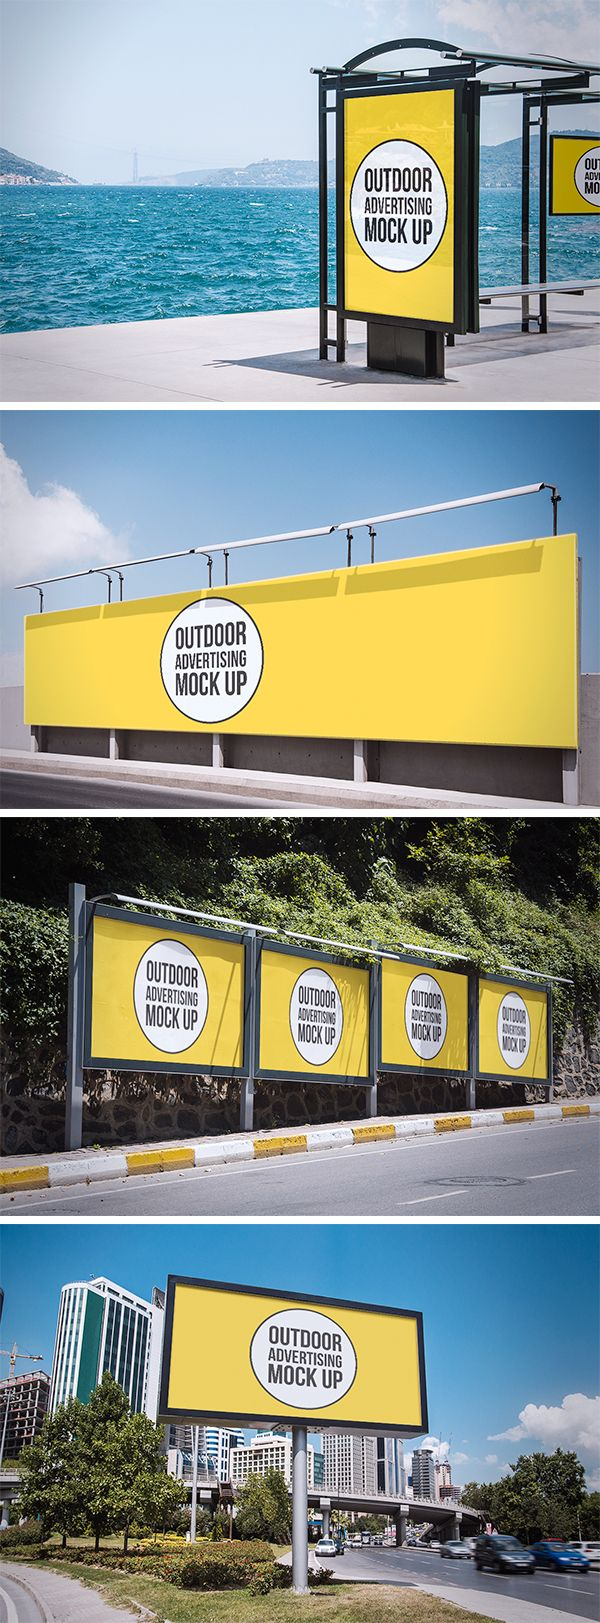 Here are 4 high quality, photo based outdoor advertising mock-ups that will present your work as displayed on different...